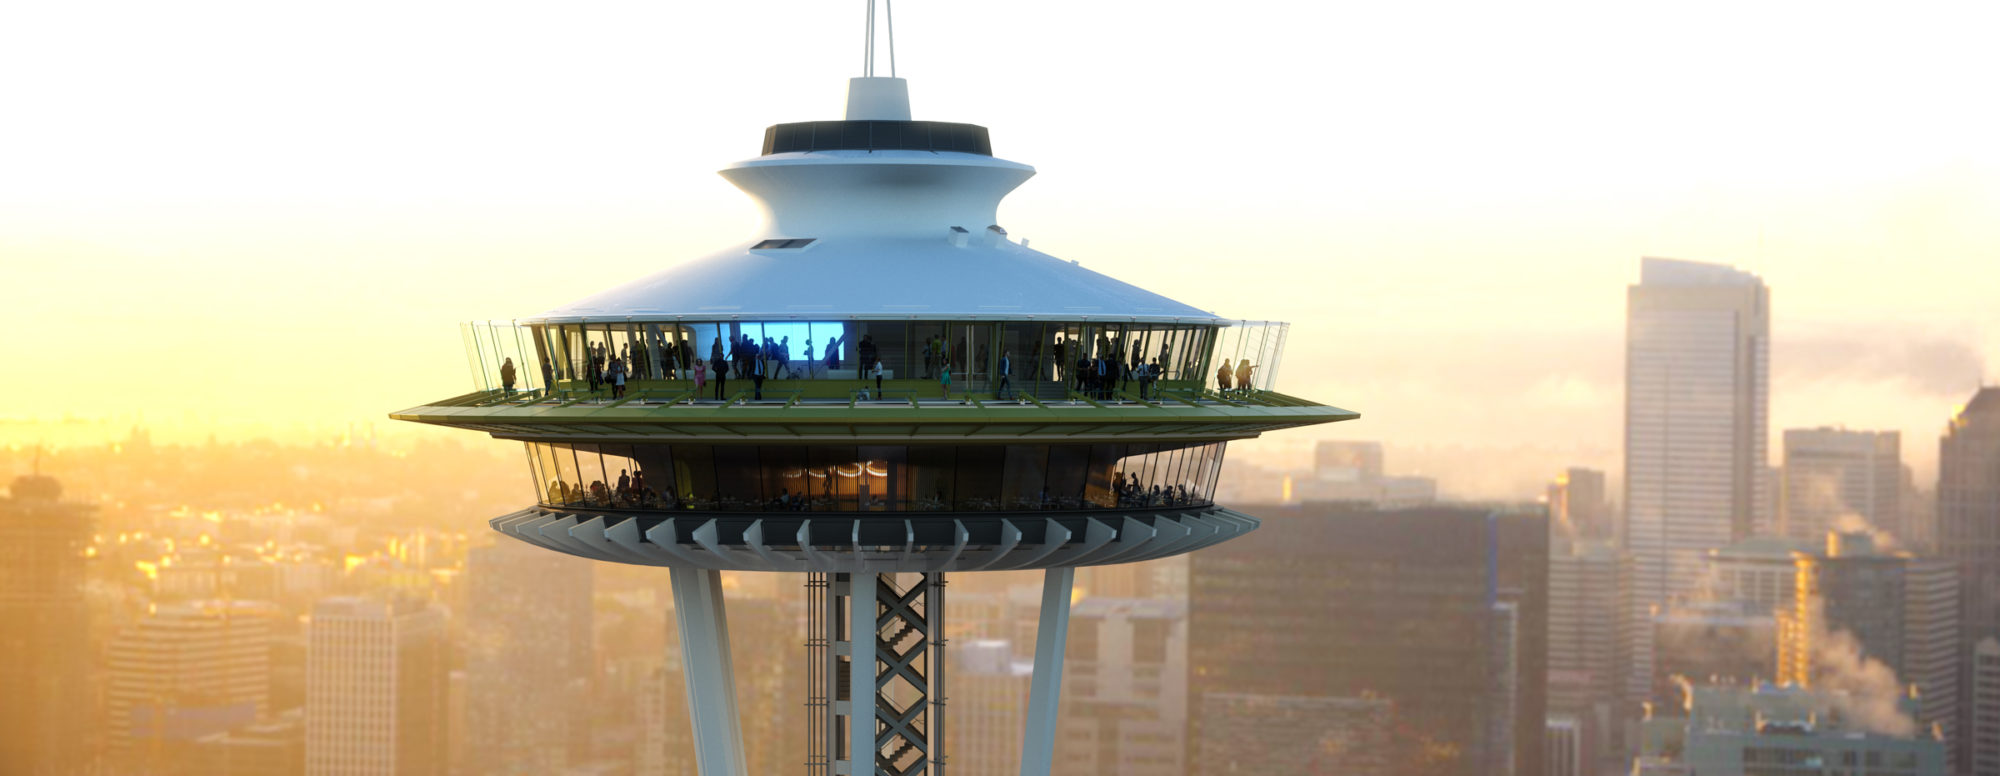 Seattle-Space-Needle-Olson-Kundig